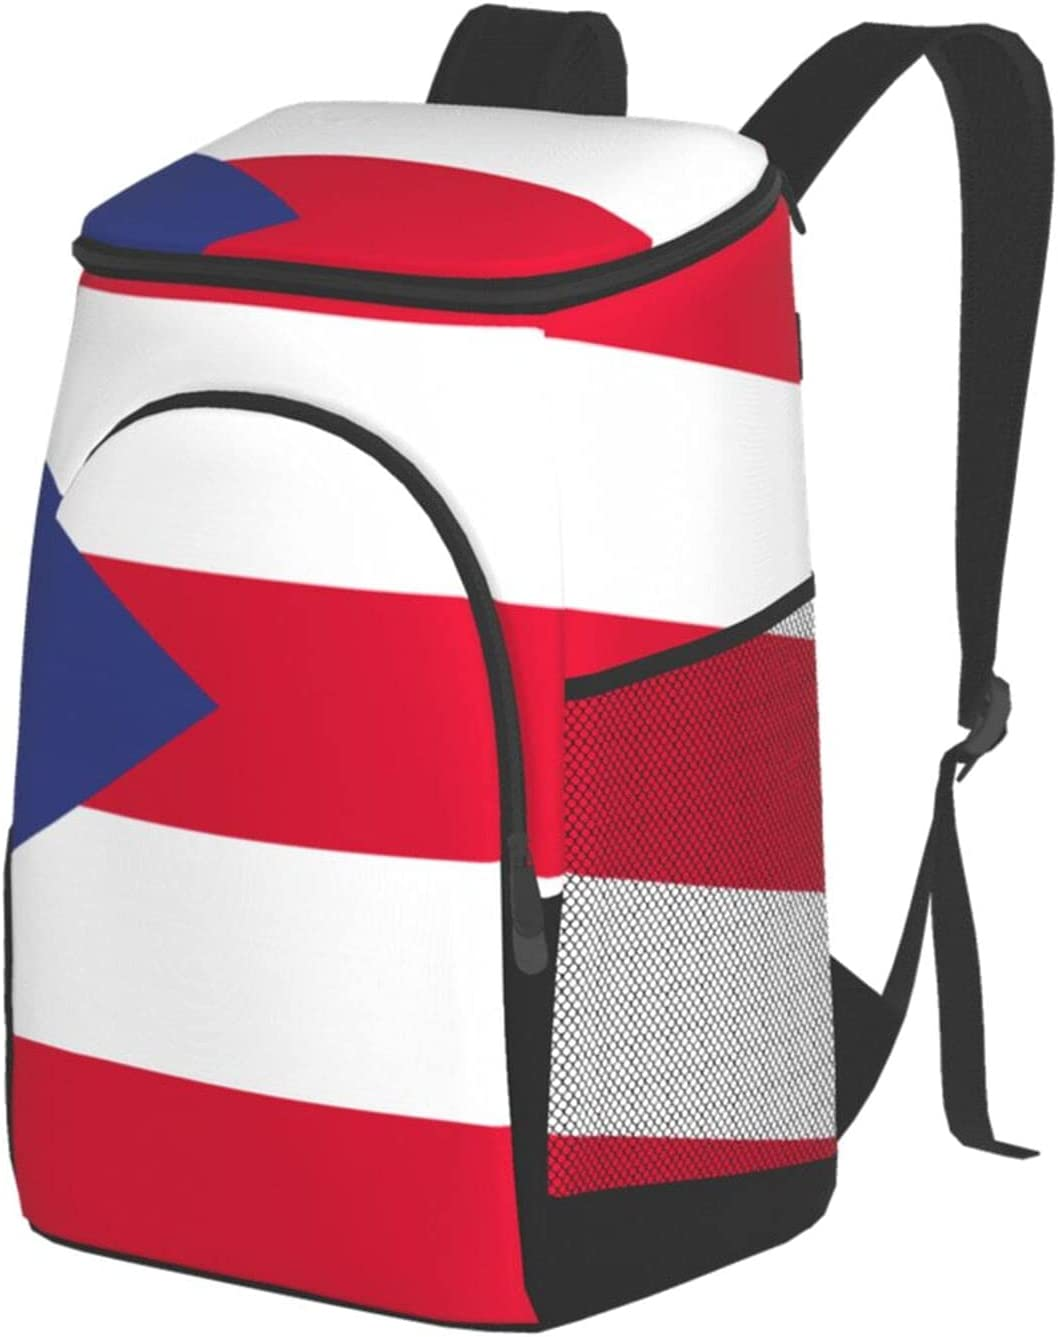 NDAQUC Puerto Rico Flag Game Bag Insulation Pic Same day shipping Shoulder San Jose Mall Outdoor